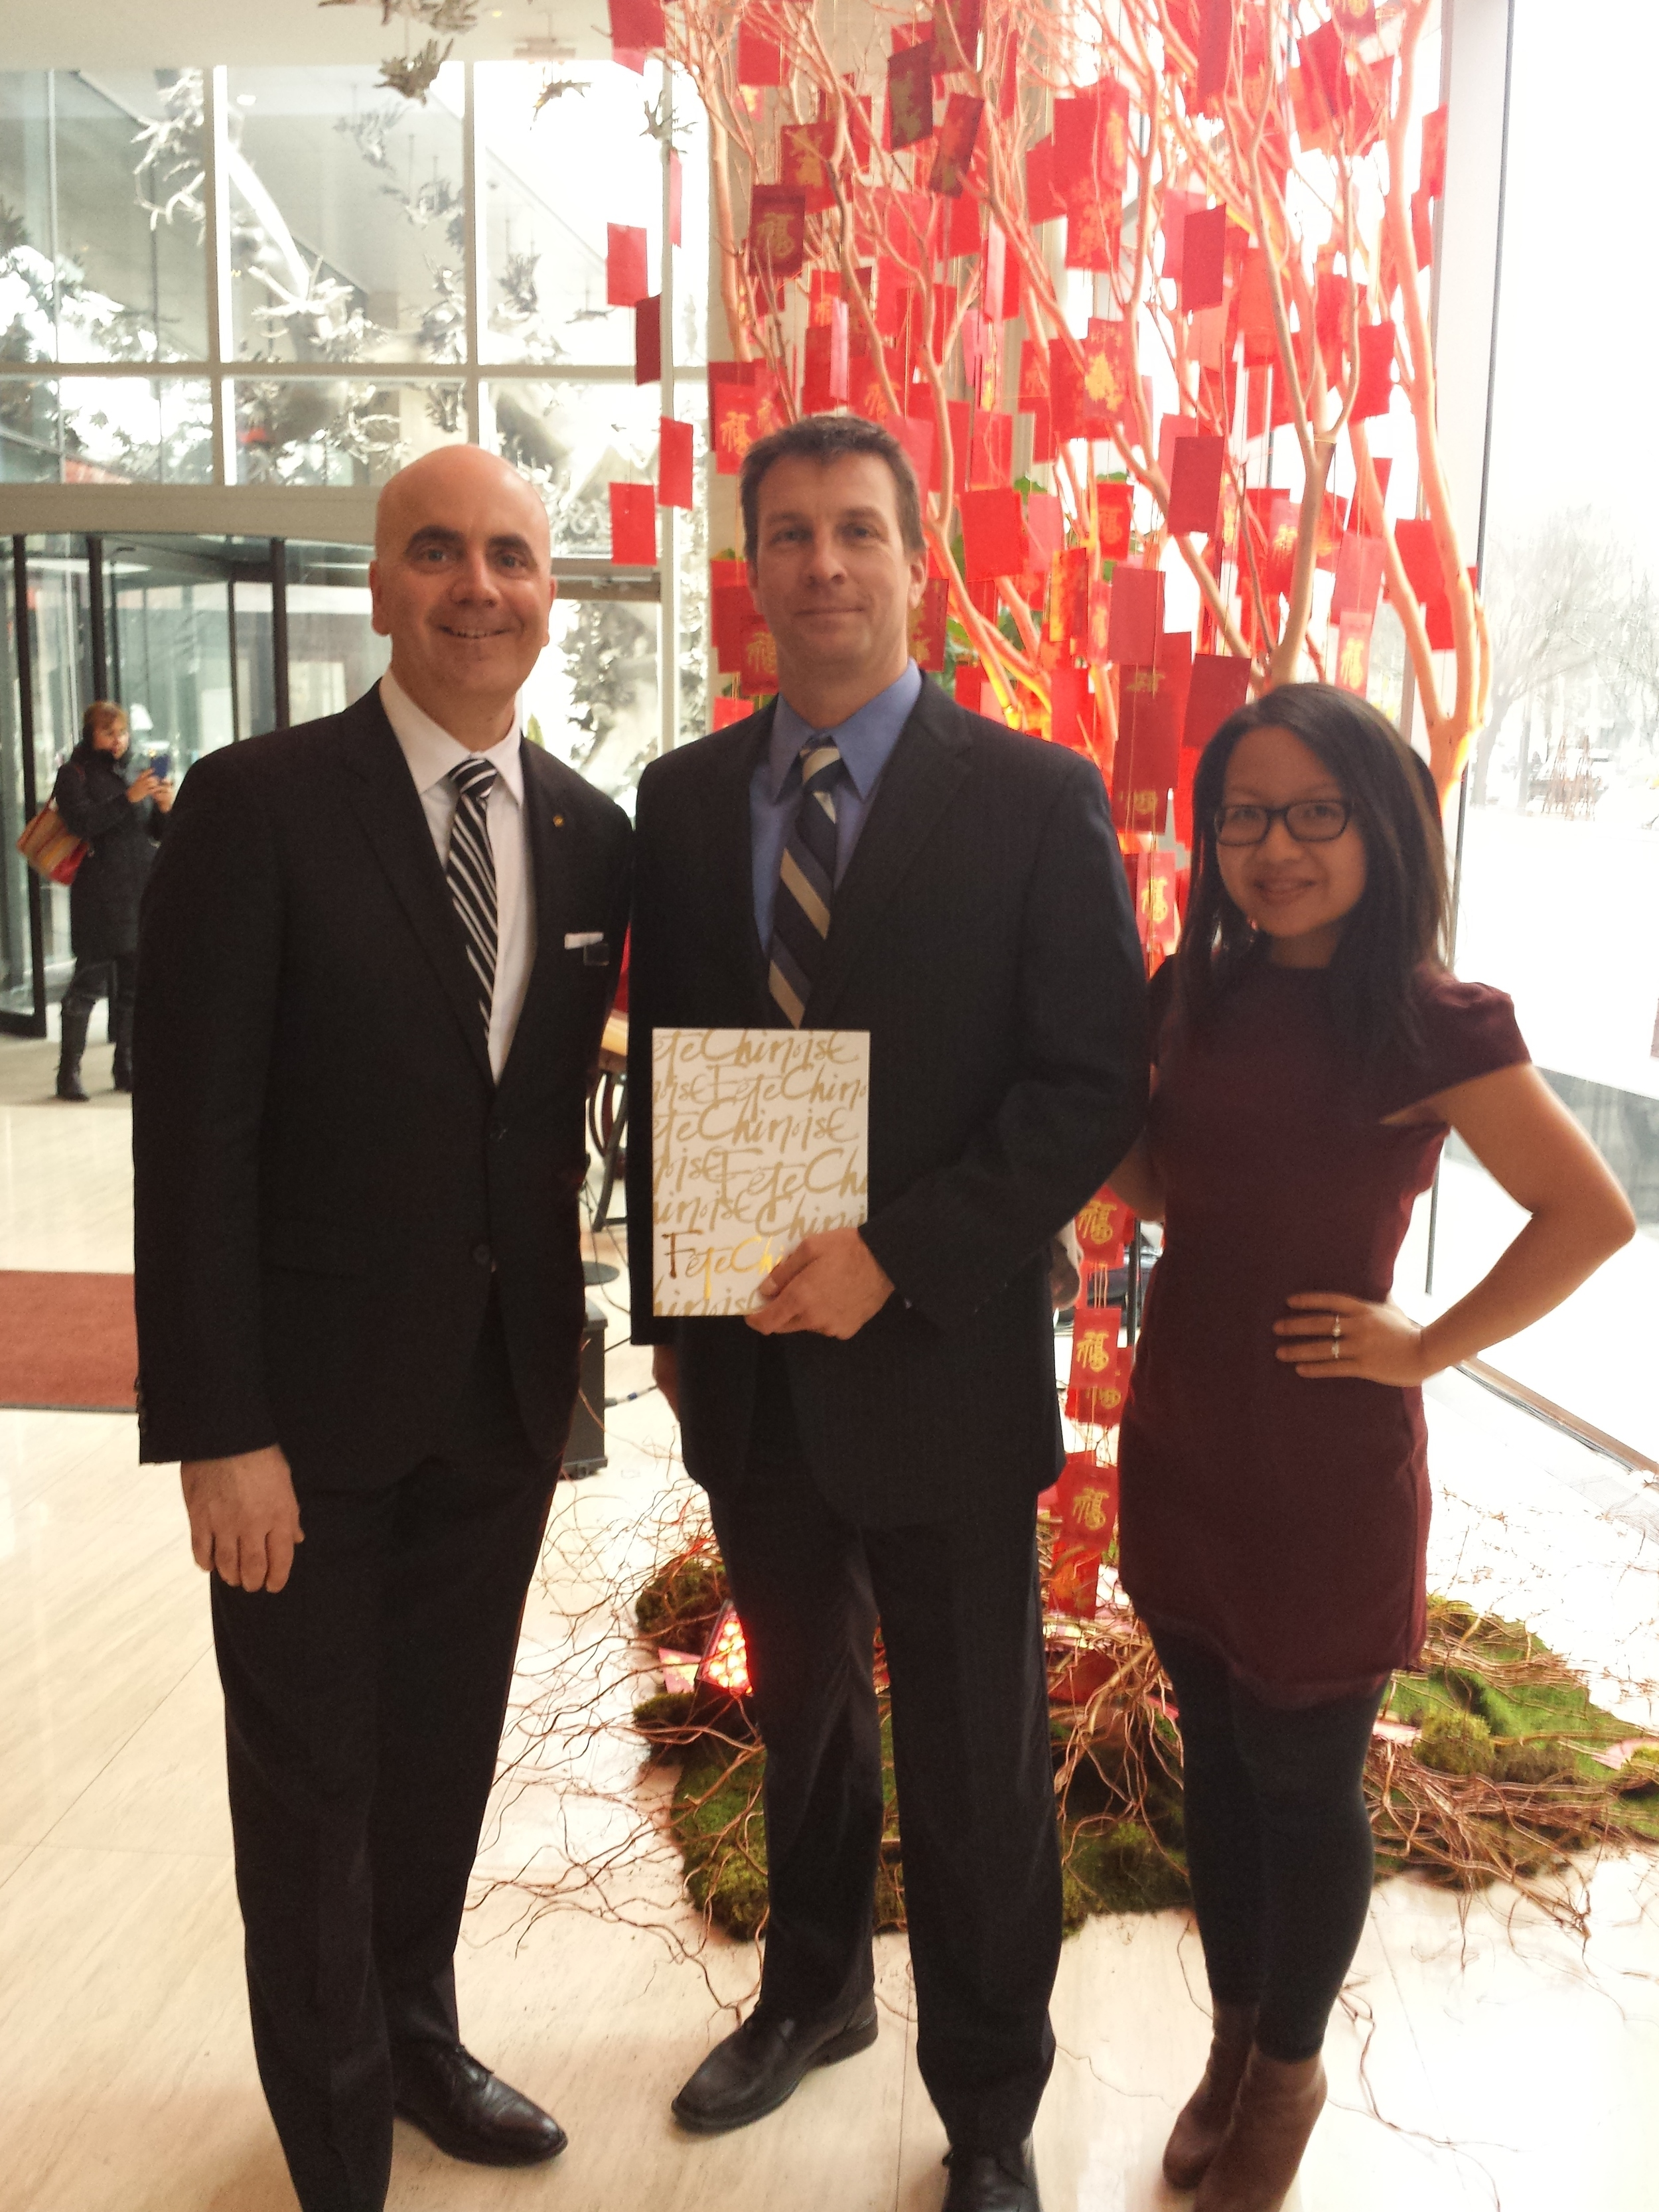 Congratulations to Dan Pembleton for taking home the grand prize! Dan is flanked by David Robitaille, Director of Events at Shangri-La Hotel, Toronto and Deborah Lau-Yu, Art Director & Producer of Fete Chinoise and Art Director at PALETTERA.